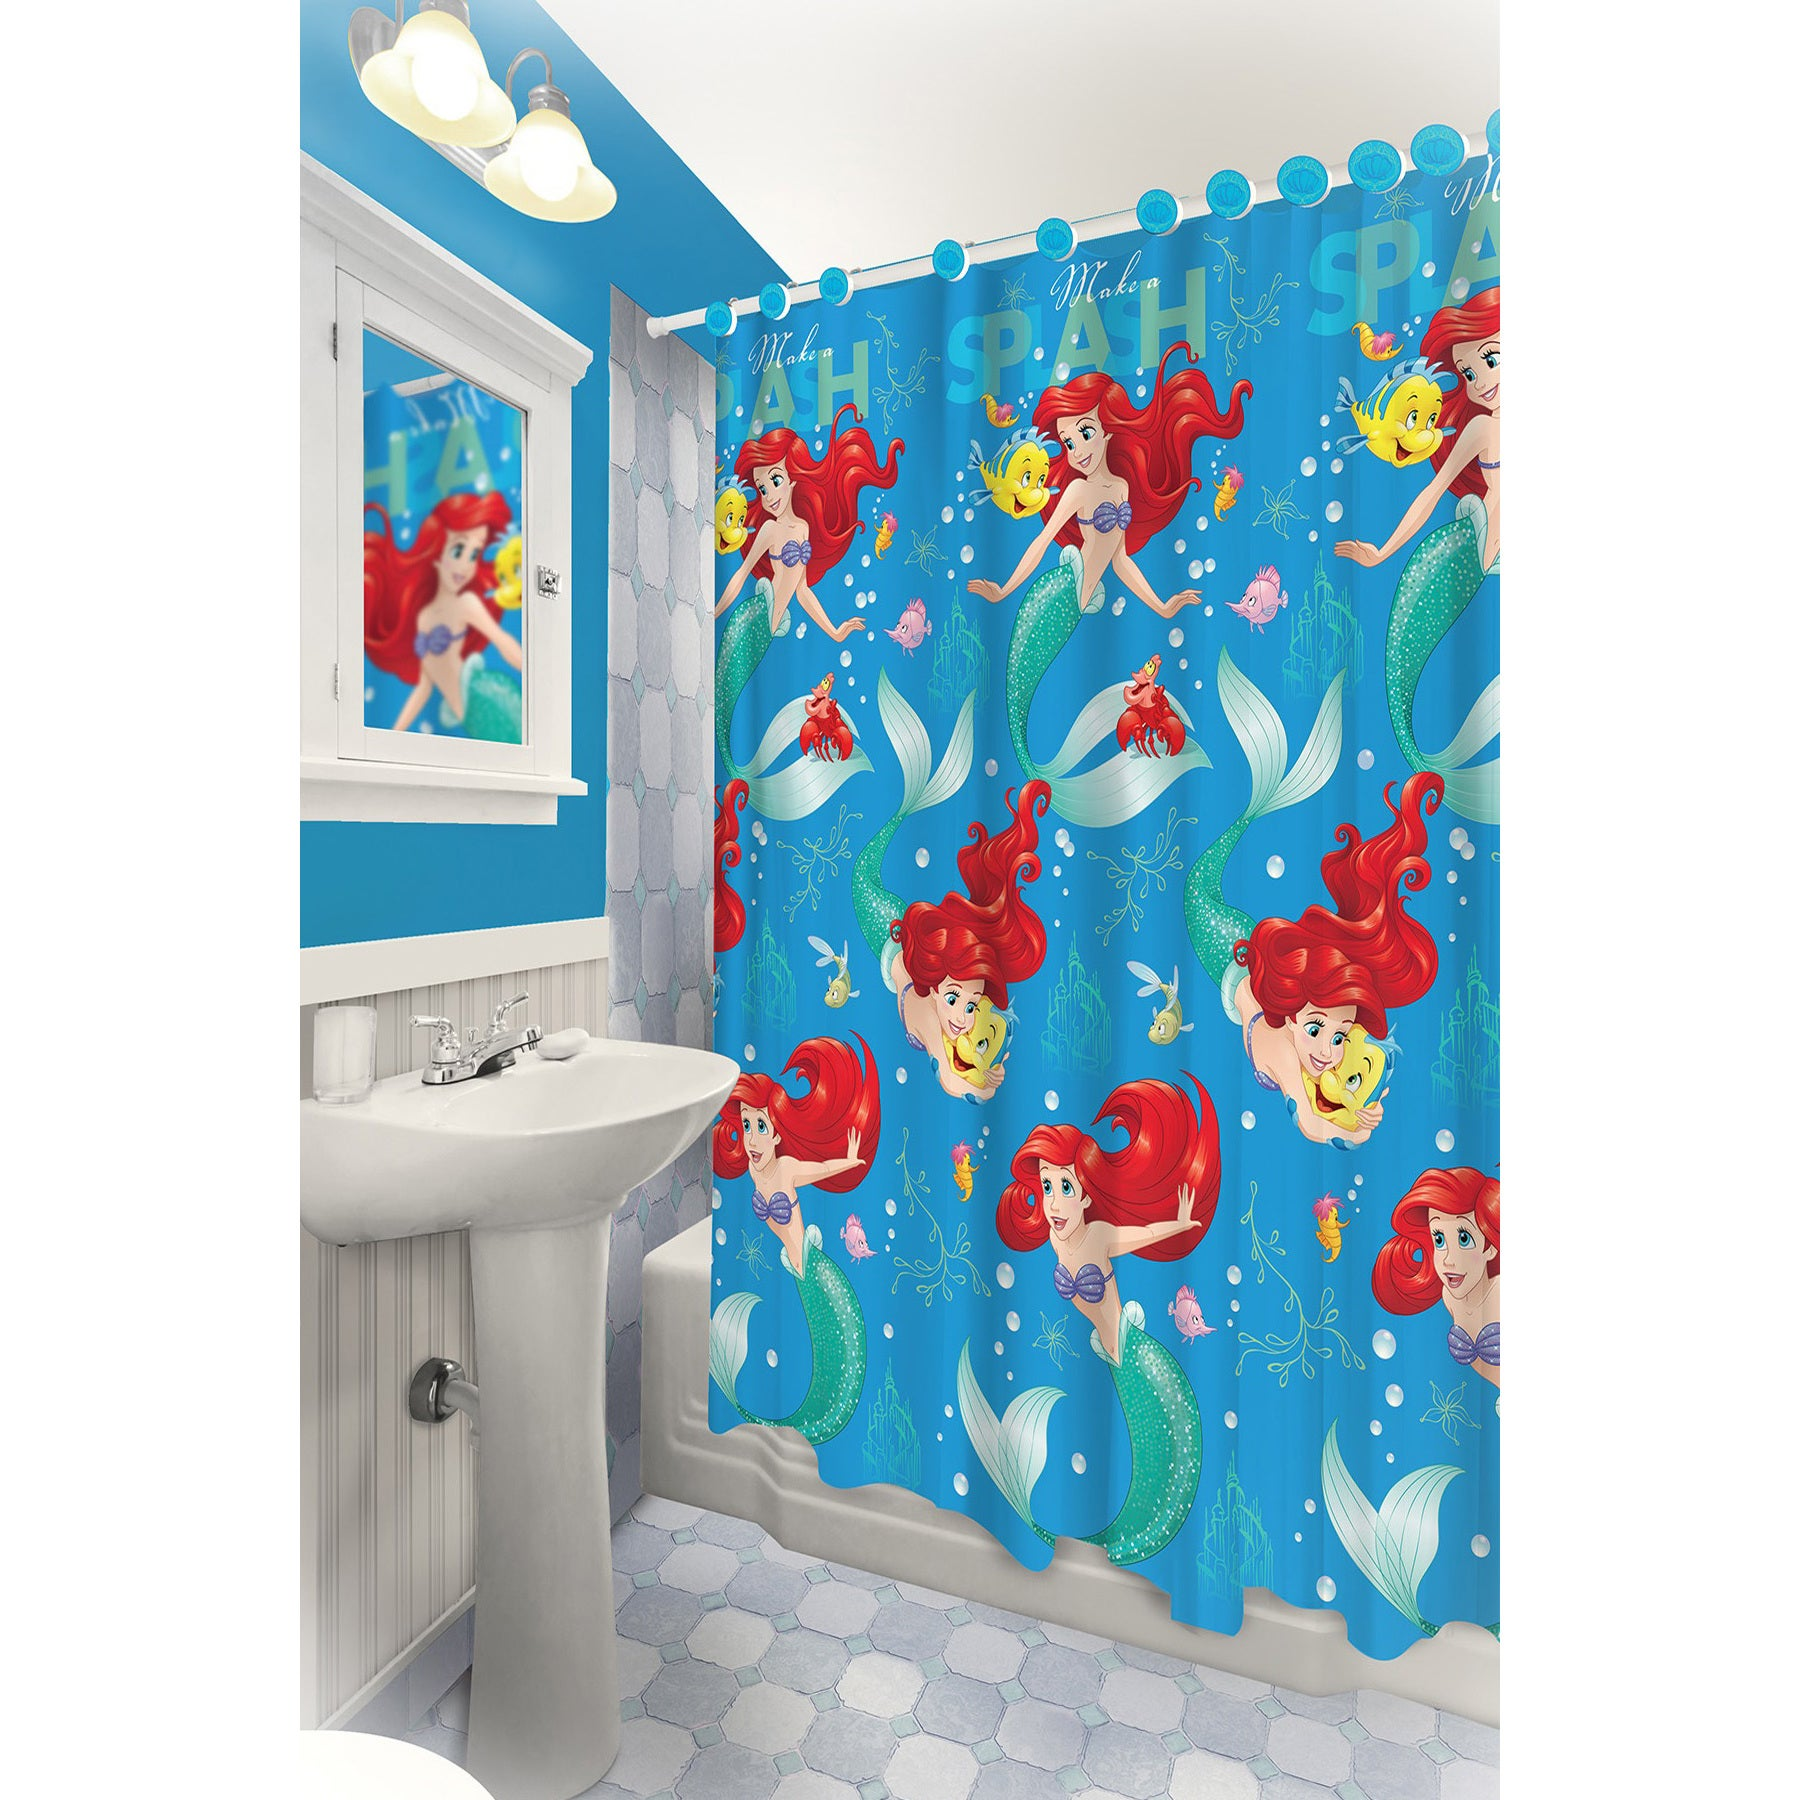 Disney The Little Mermaid Themed Printed Shower Curtain w...